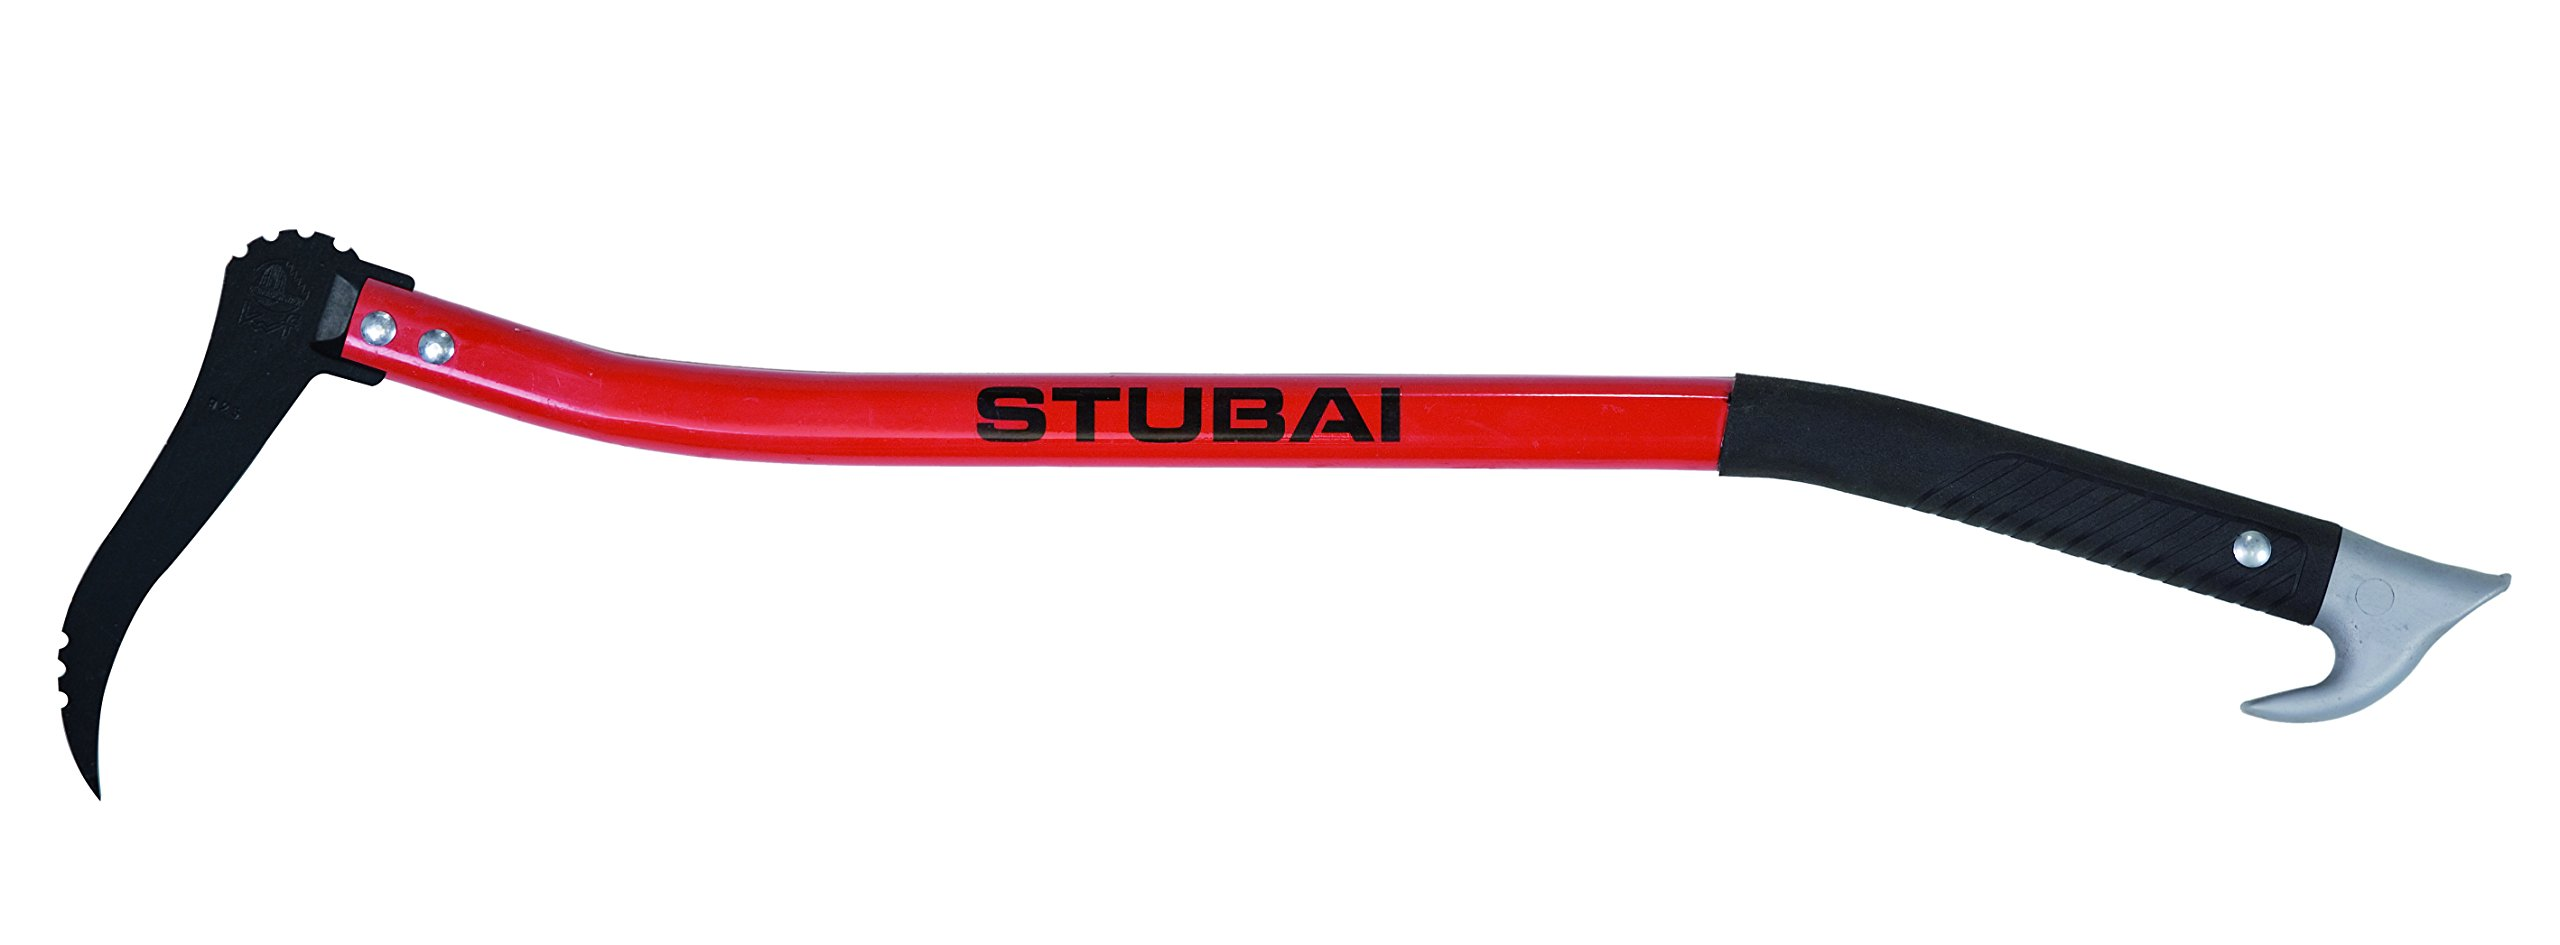 Stubai 674290 Hand lifting hook 900mm with aluminum handle ergonomic